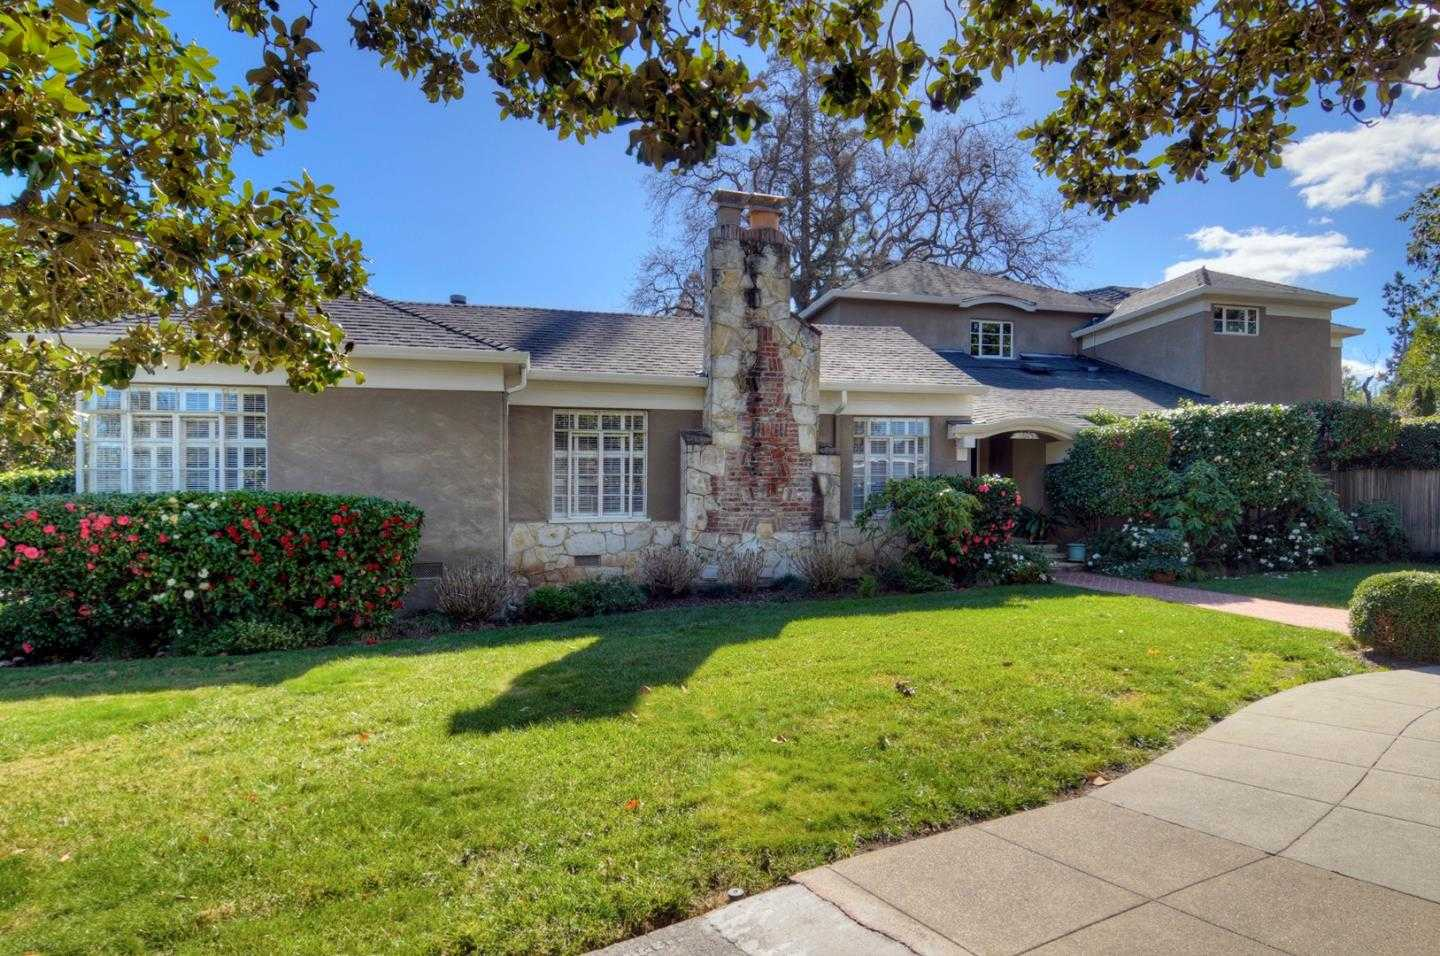 $2,998,000 - 4Br/5Ba -  for Sale in Redwood City